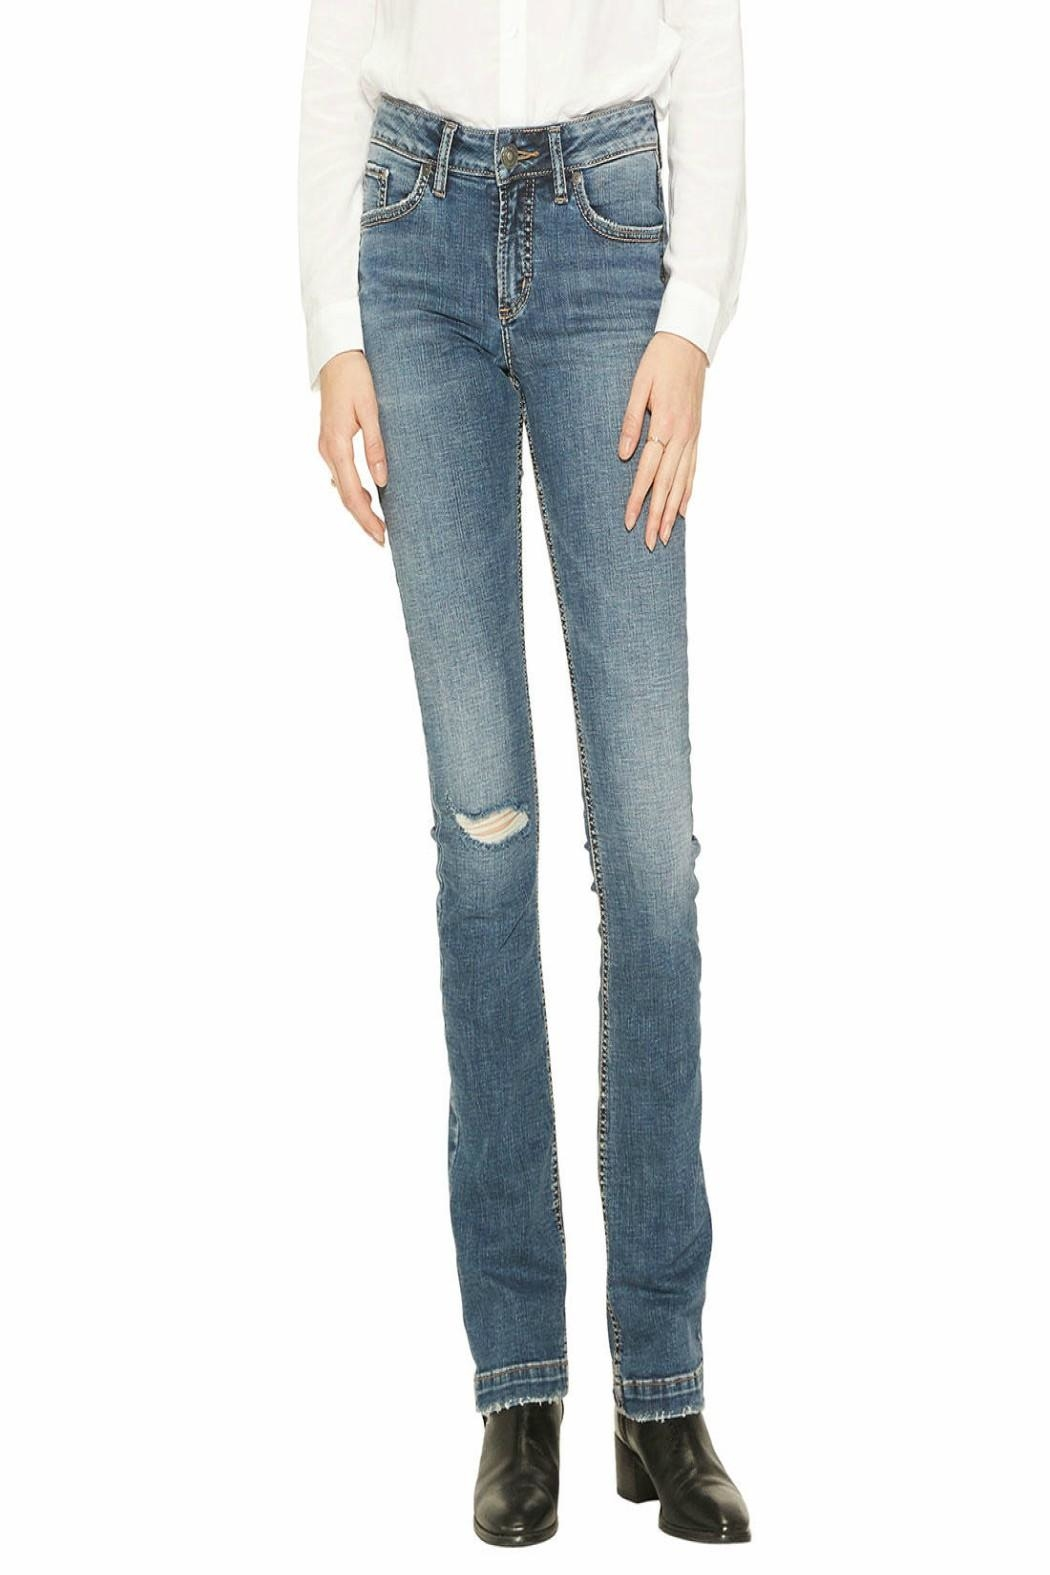 Silver Jeans Co. Slim-Boot Elyse Jeans - Main Image